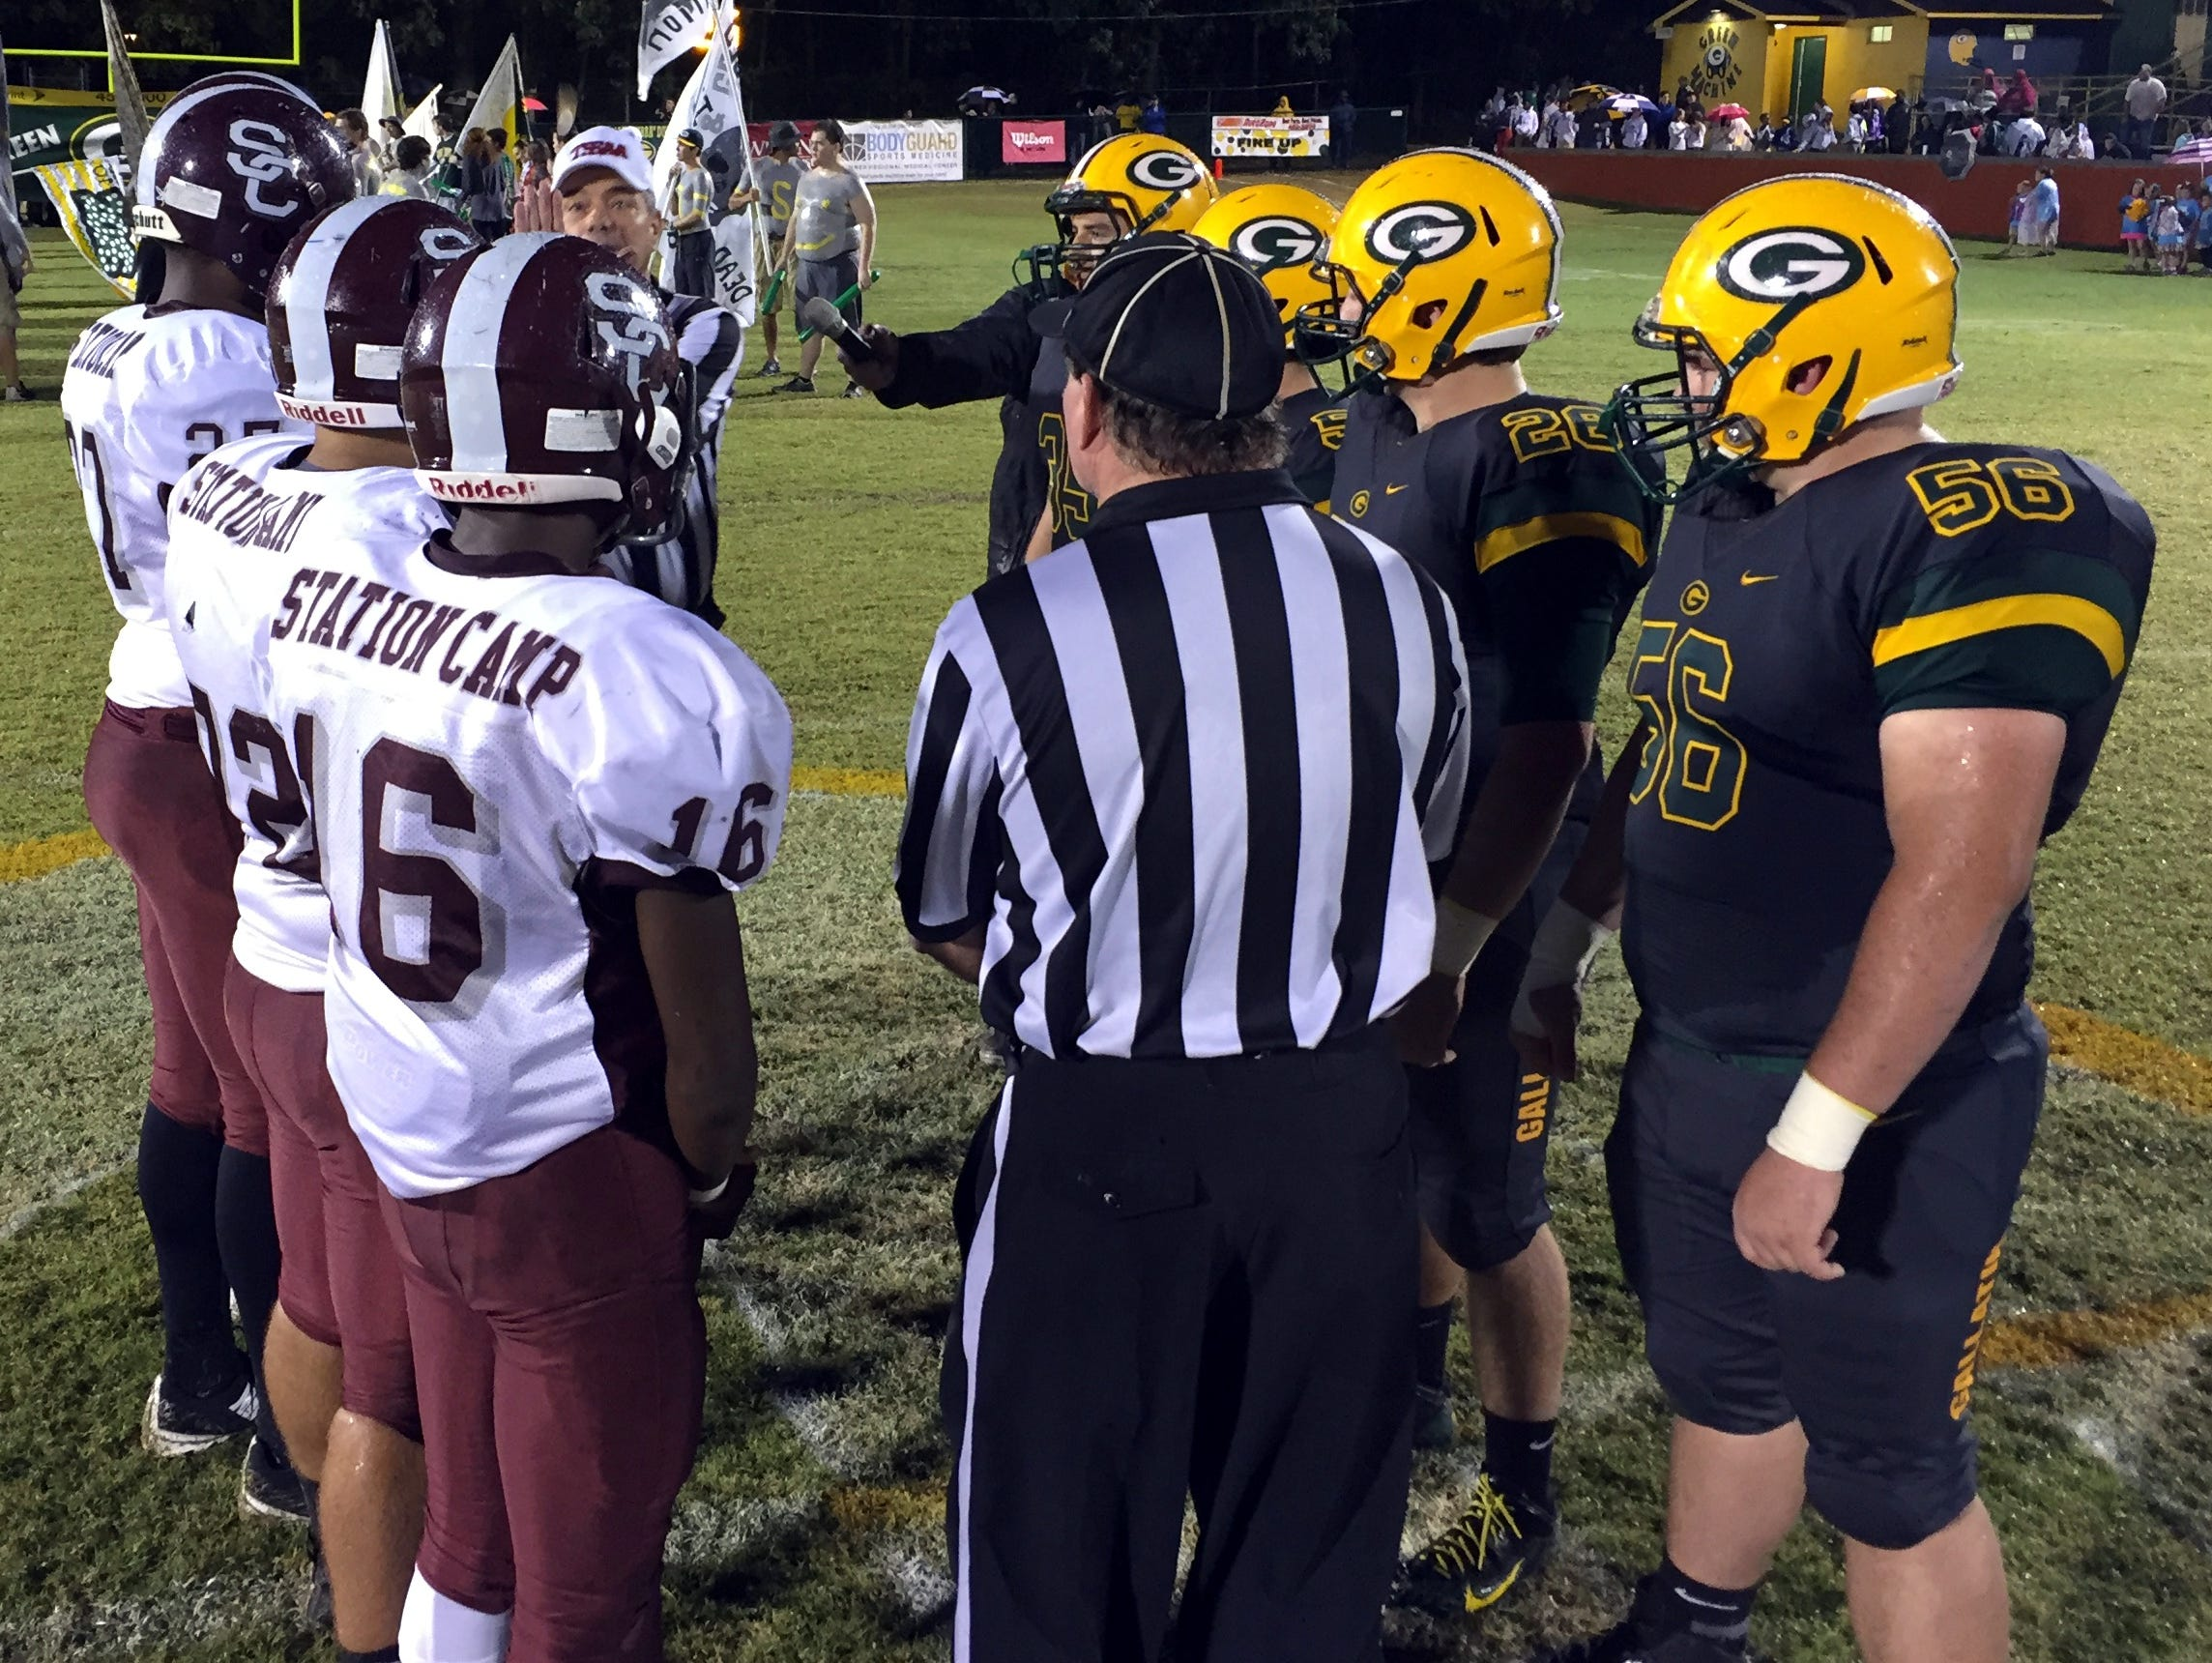 Station Camp and Gallatin meet on Sept. 23 in a rematch of last year's contest, which the Bison won 27-19.